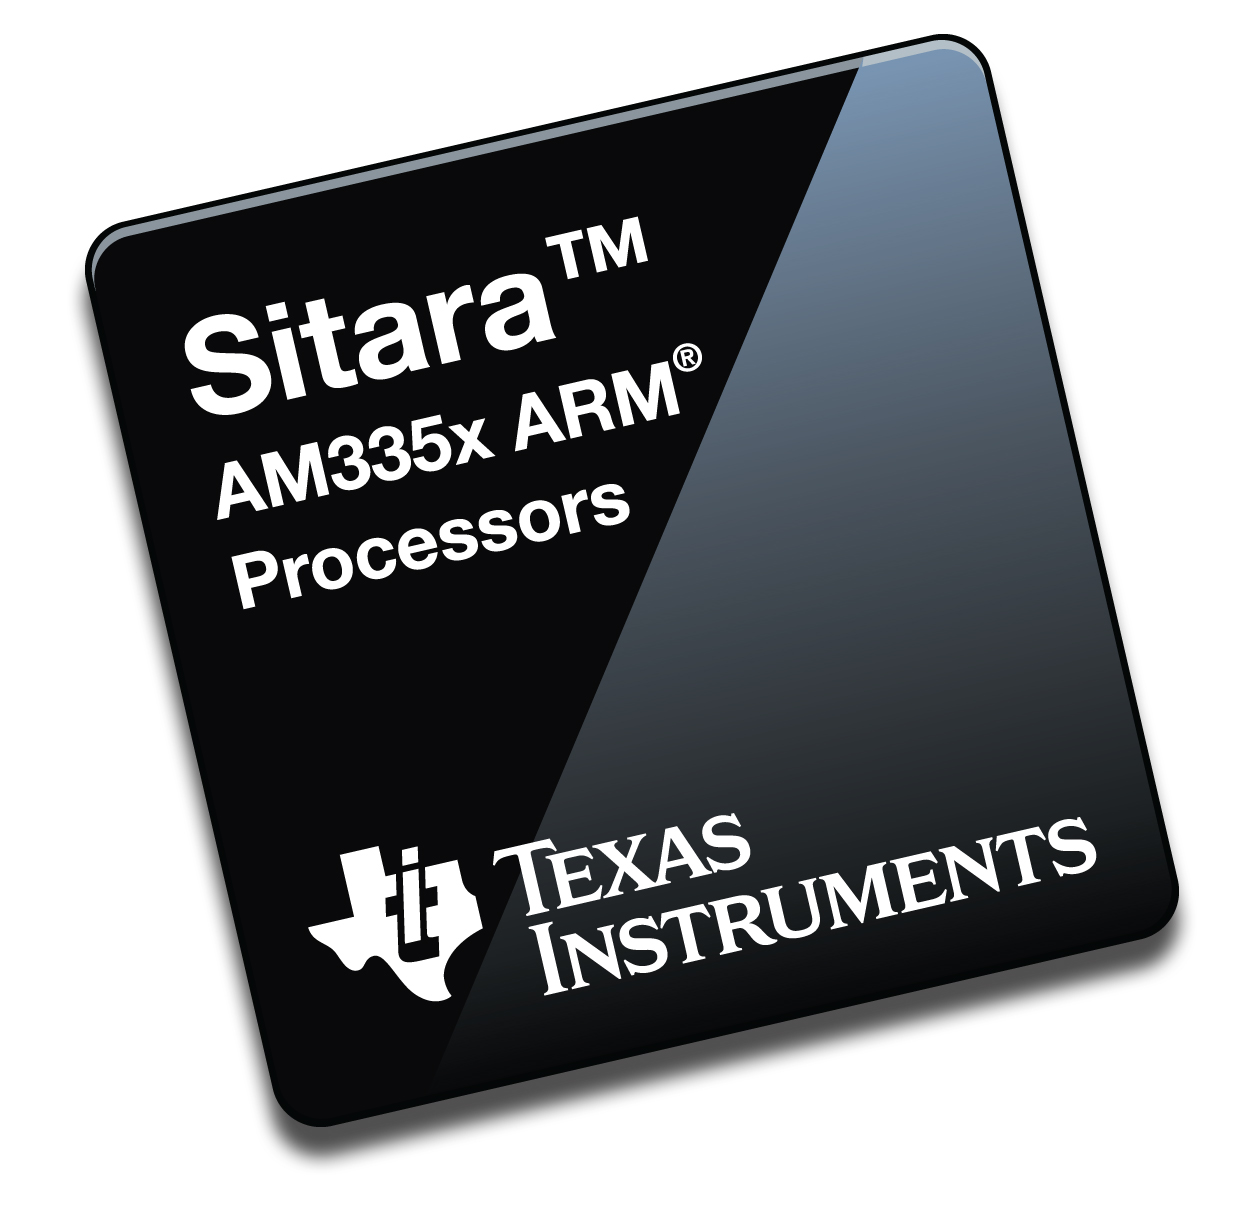 The Sitra AM571x processor. Image credit: Mouser